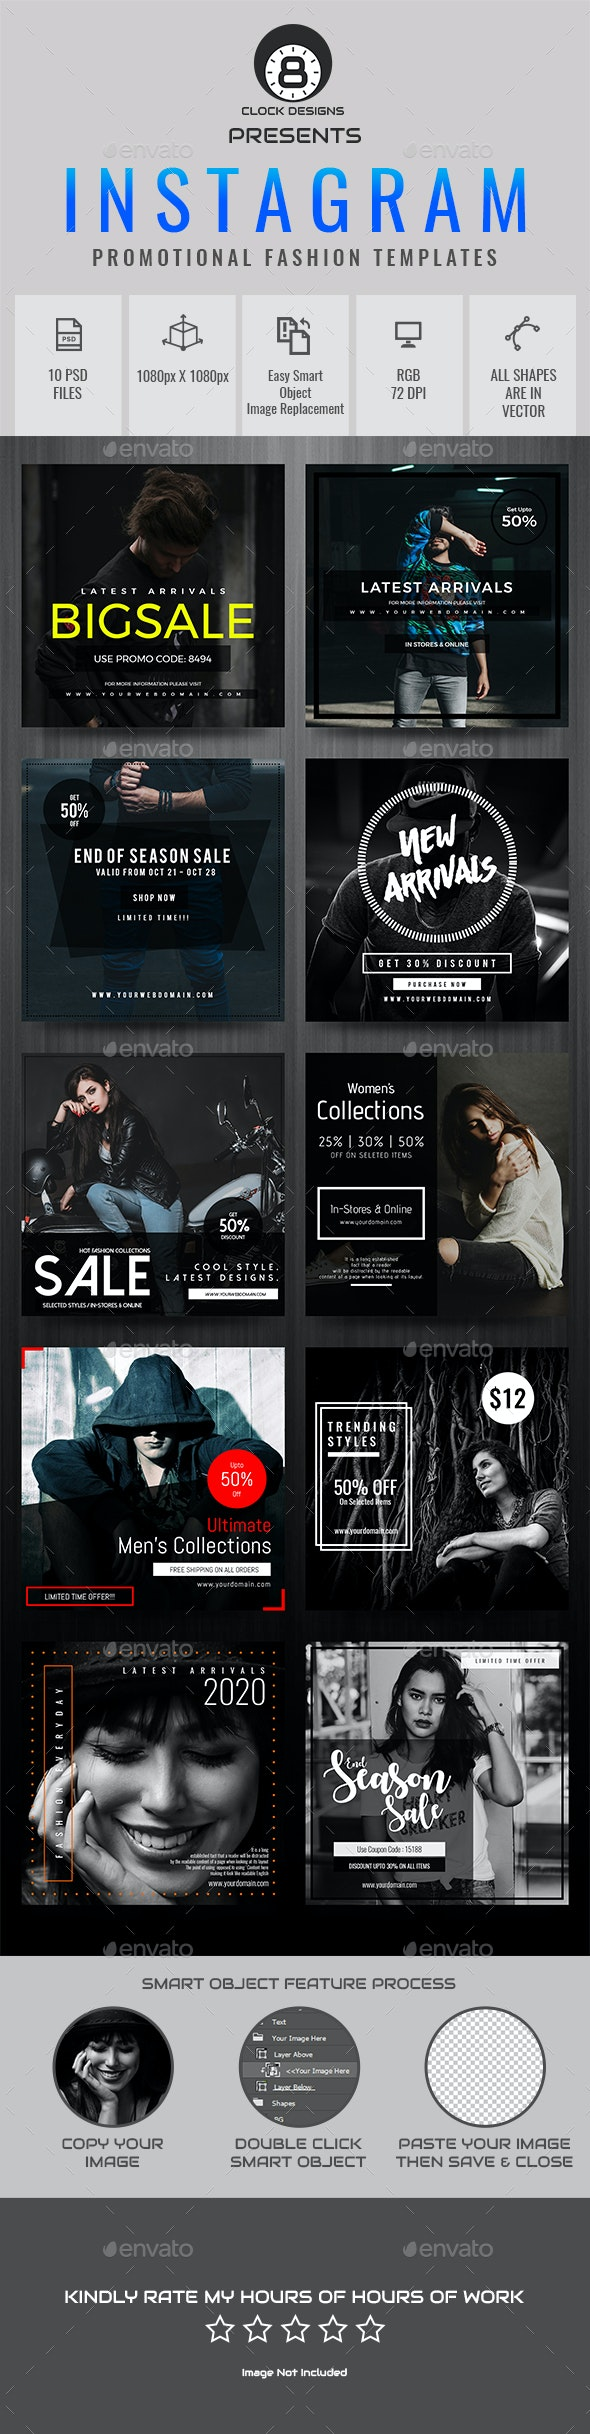 Instagram Fashion Templates ( 10 in 1 ) - Social Media Web Elements